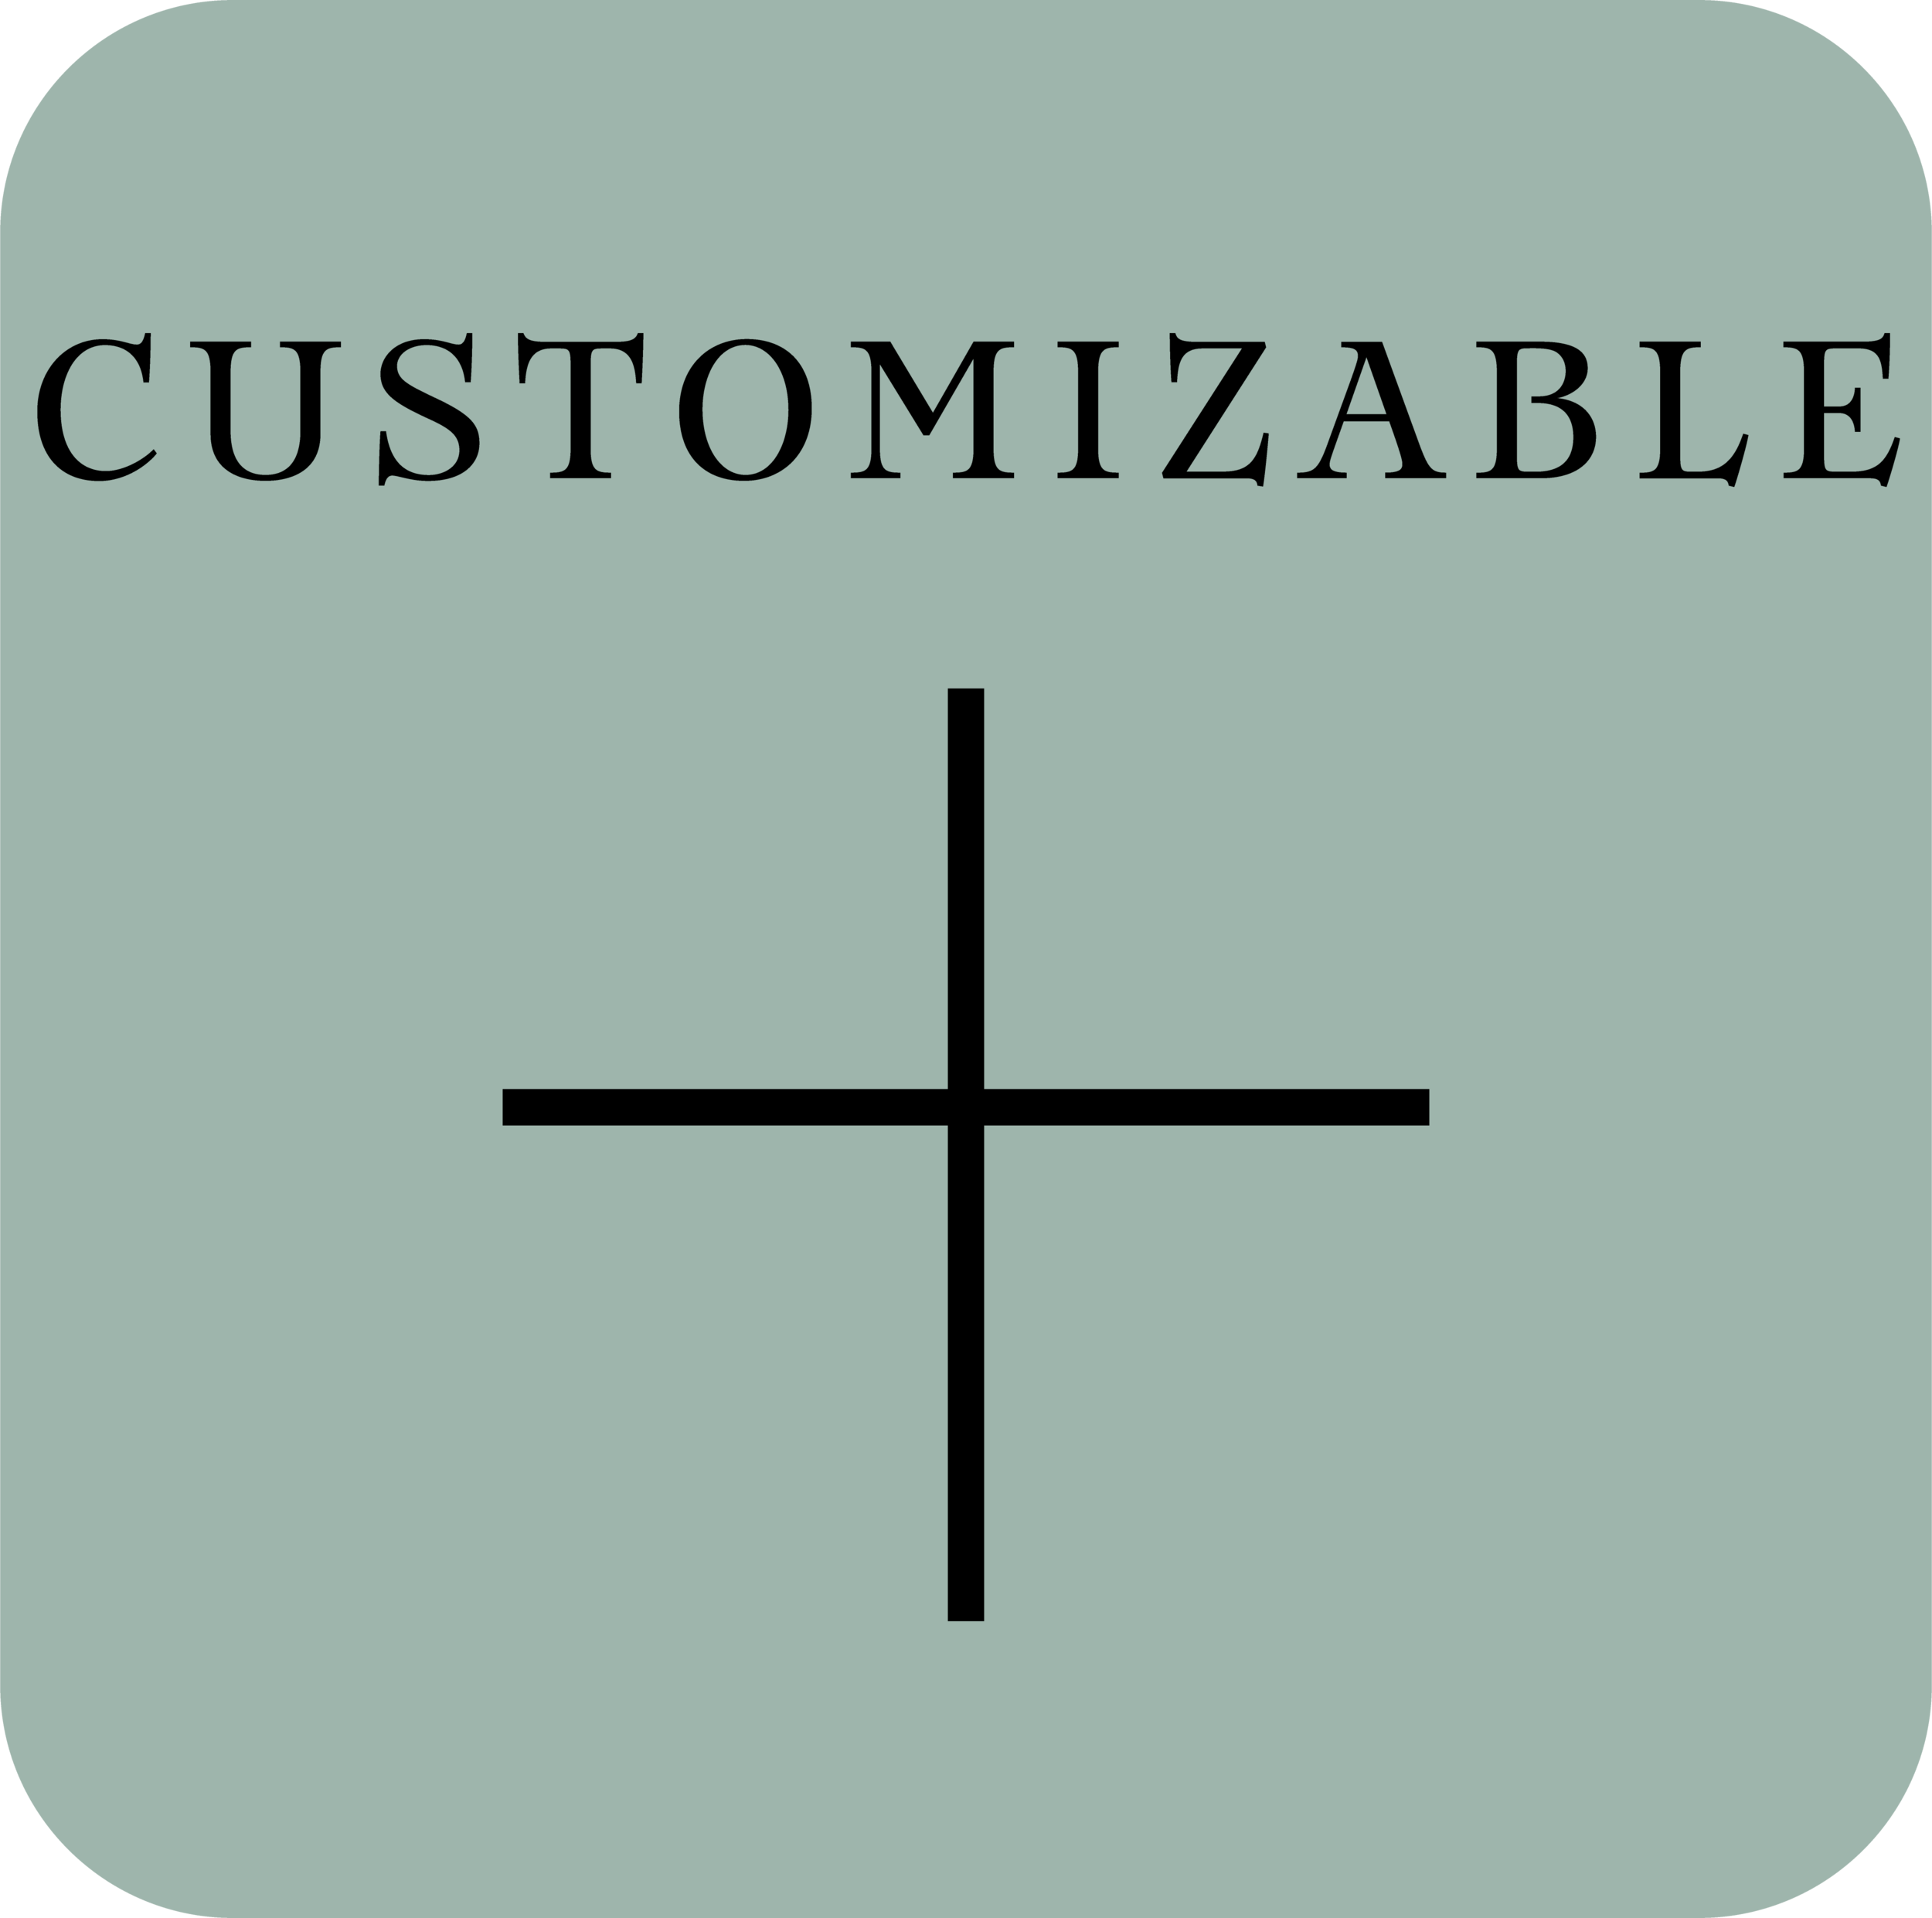 customizable.png